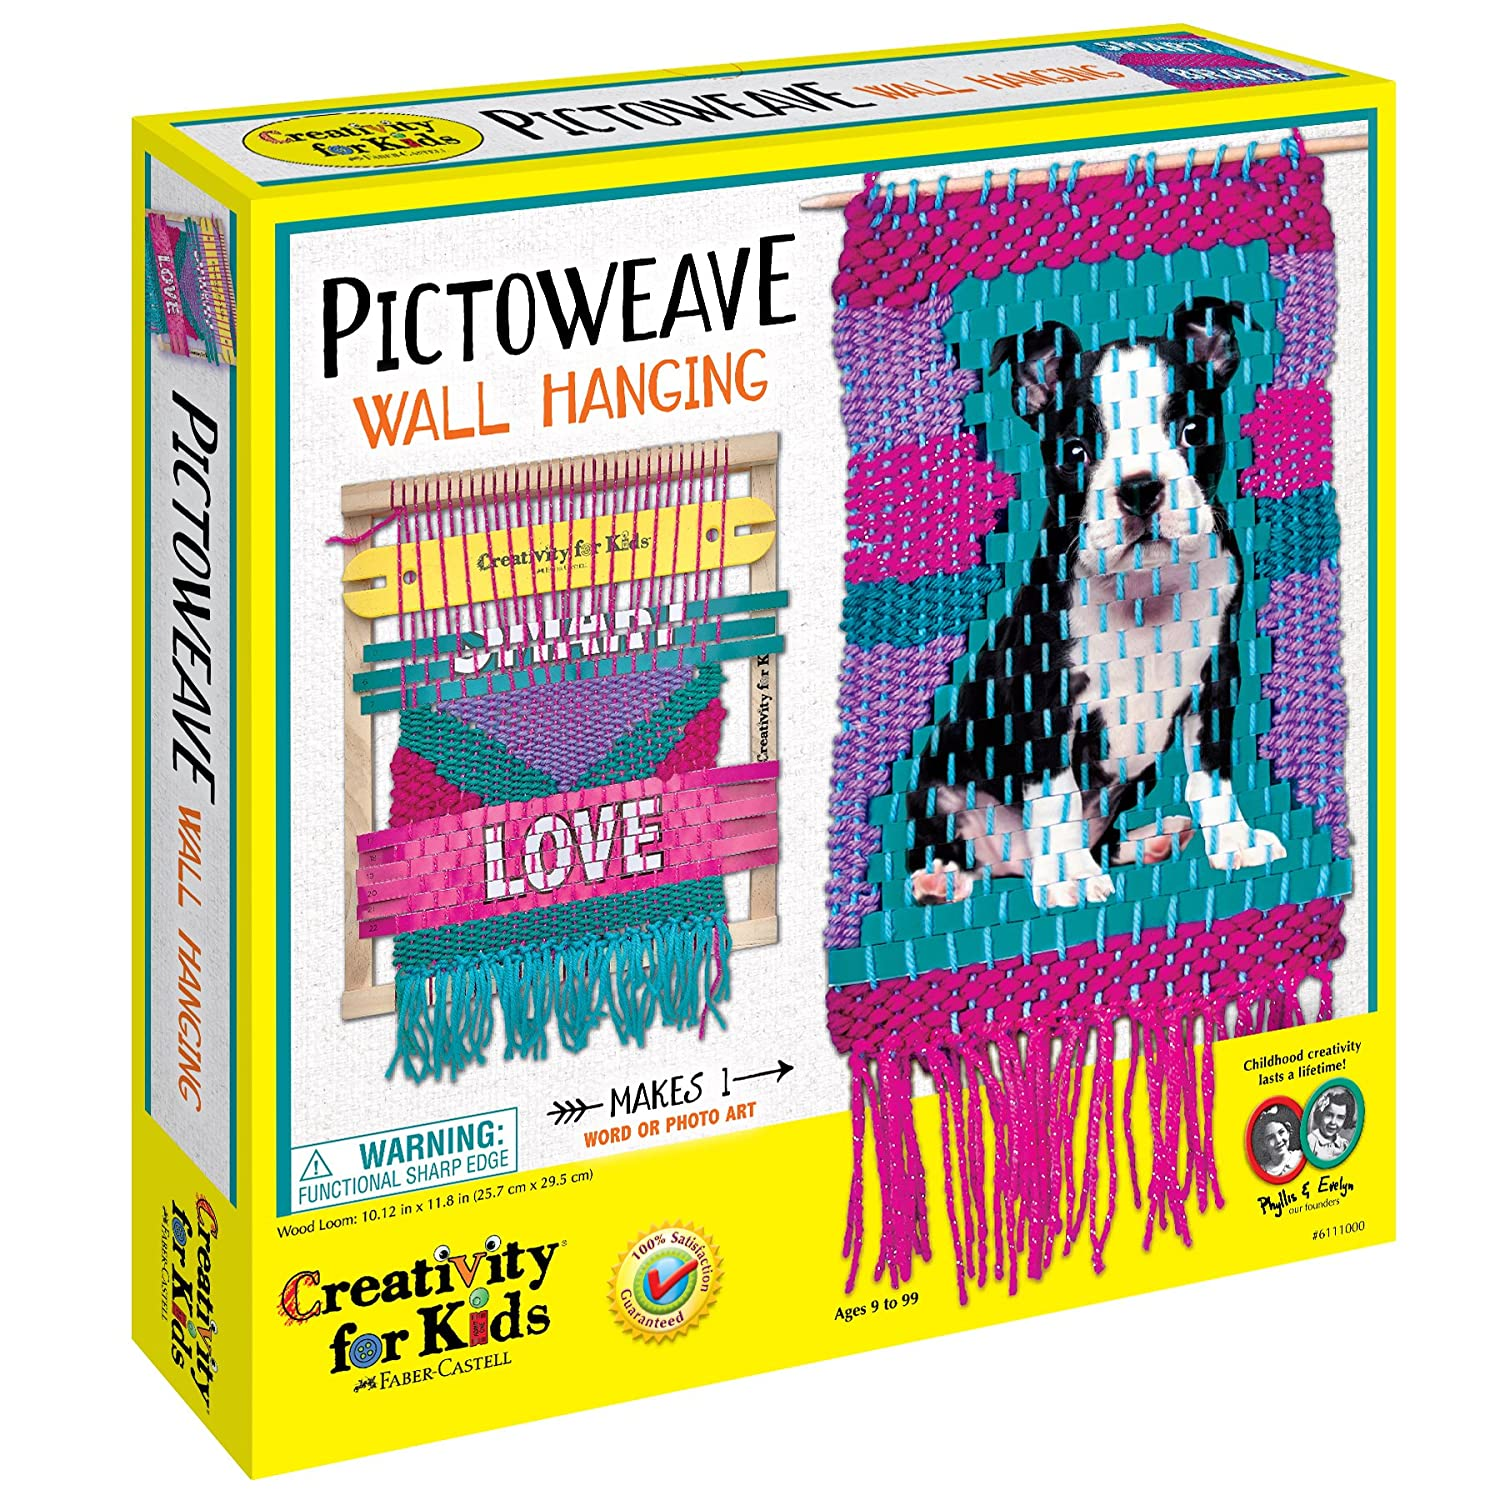 Creativity for Kids Pictoweave Wall Hanging Faber-Castell 6111000